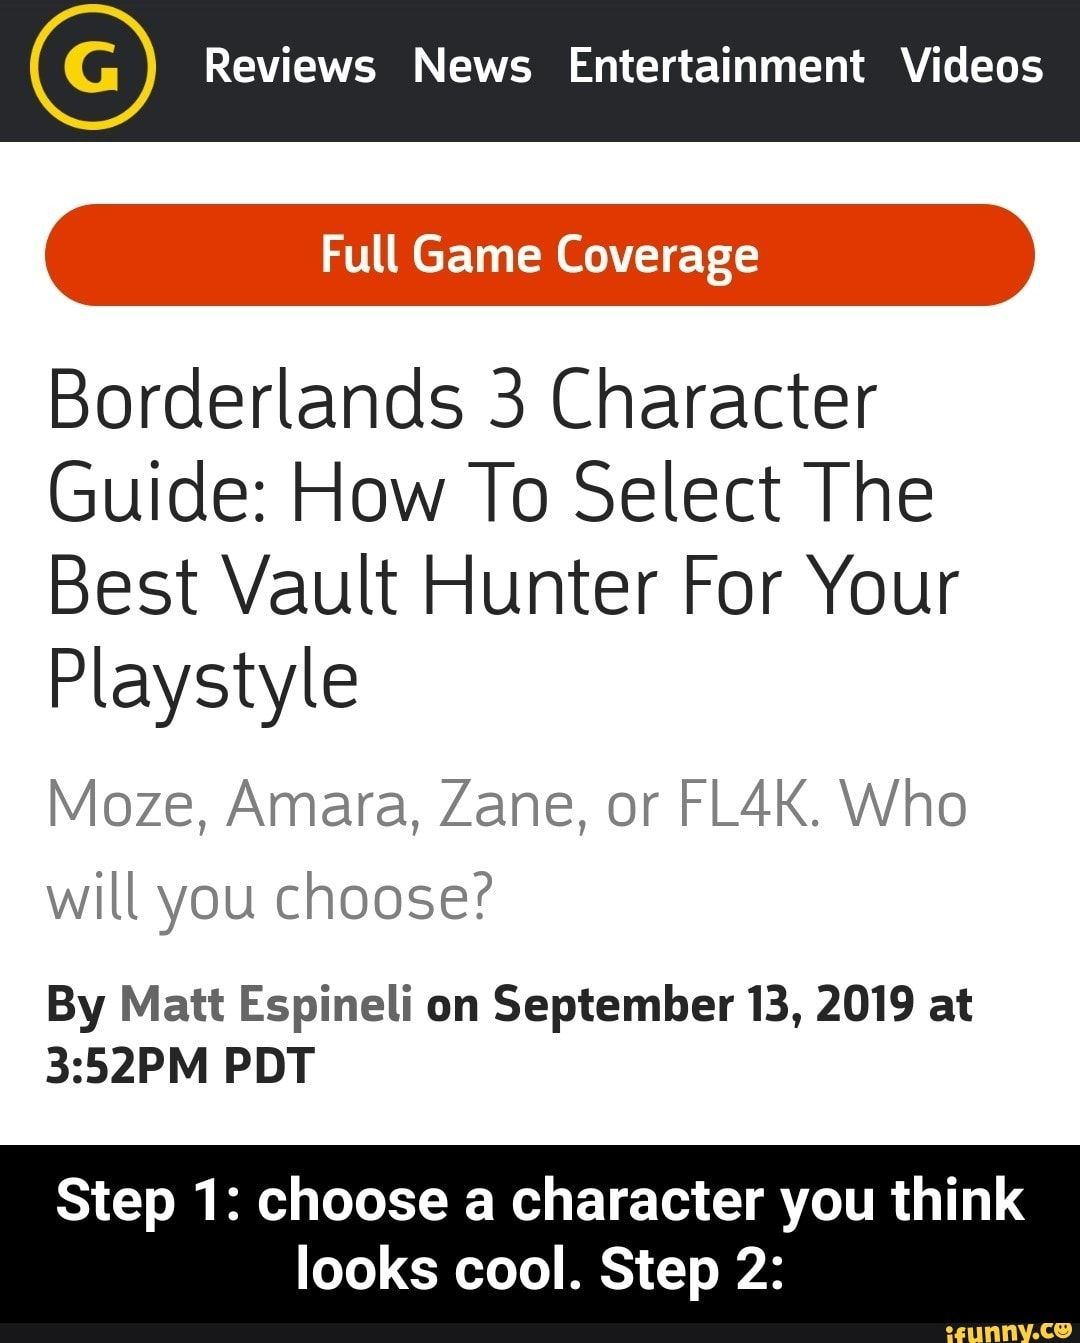 Reviews News Entertainment Videos Borderlands 3 Character Guide How To Select The Best Vault Hunter For Your Playstyle Moze Amara Zane Or Fl4k Who Will Y Entertainment Video Funny Sports Memes Memes